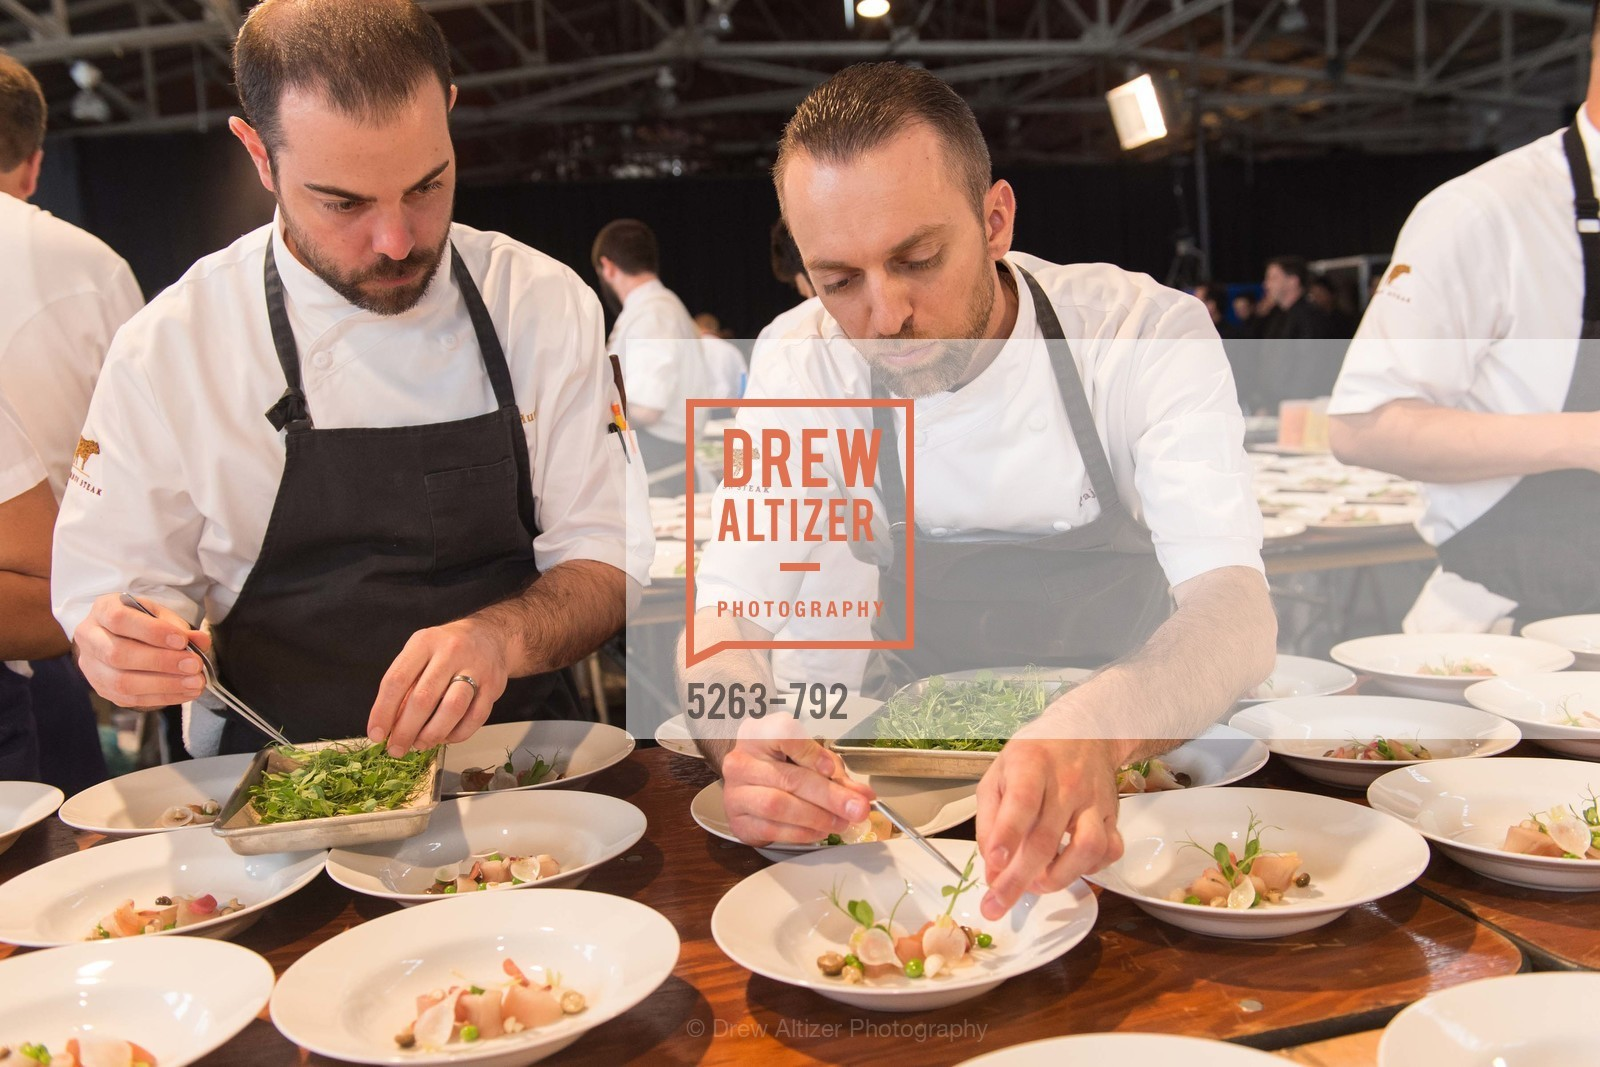 Travis Hunter, Bajo Bruich, Marck Banagan, MEALS ON WHEELS OF SAN FRANCISCO'S 28th Annual Star Chefs and Vintners Gala, US, April 20th, 2015,Drew Altizer, Drew Altizer Photography, full-service agency, private events, San Francisco photographer, photographer california